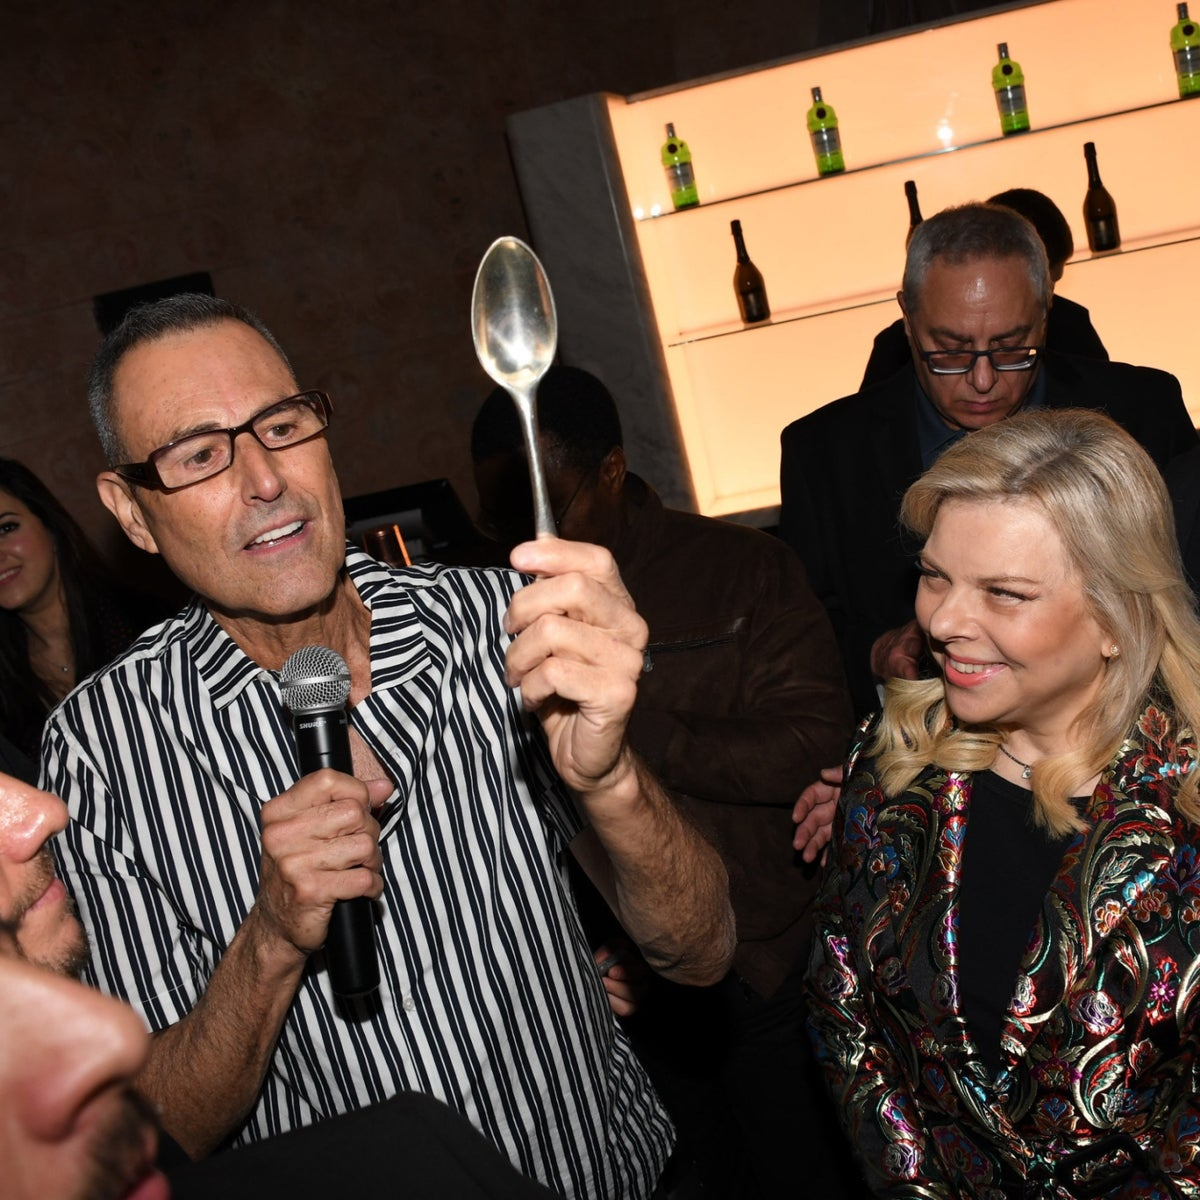 Uri Geller and Sara Netanyahu, at the exhibition opening, December 29, 2019.